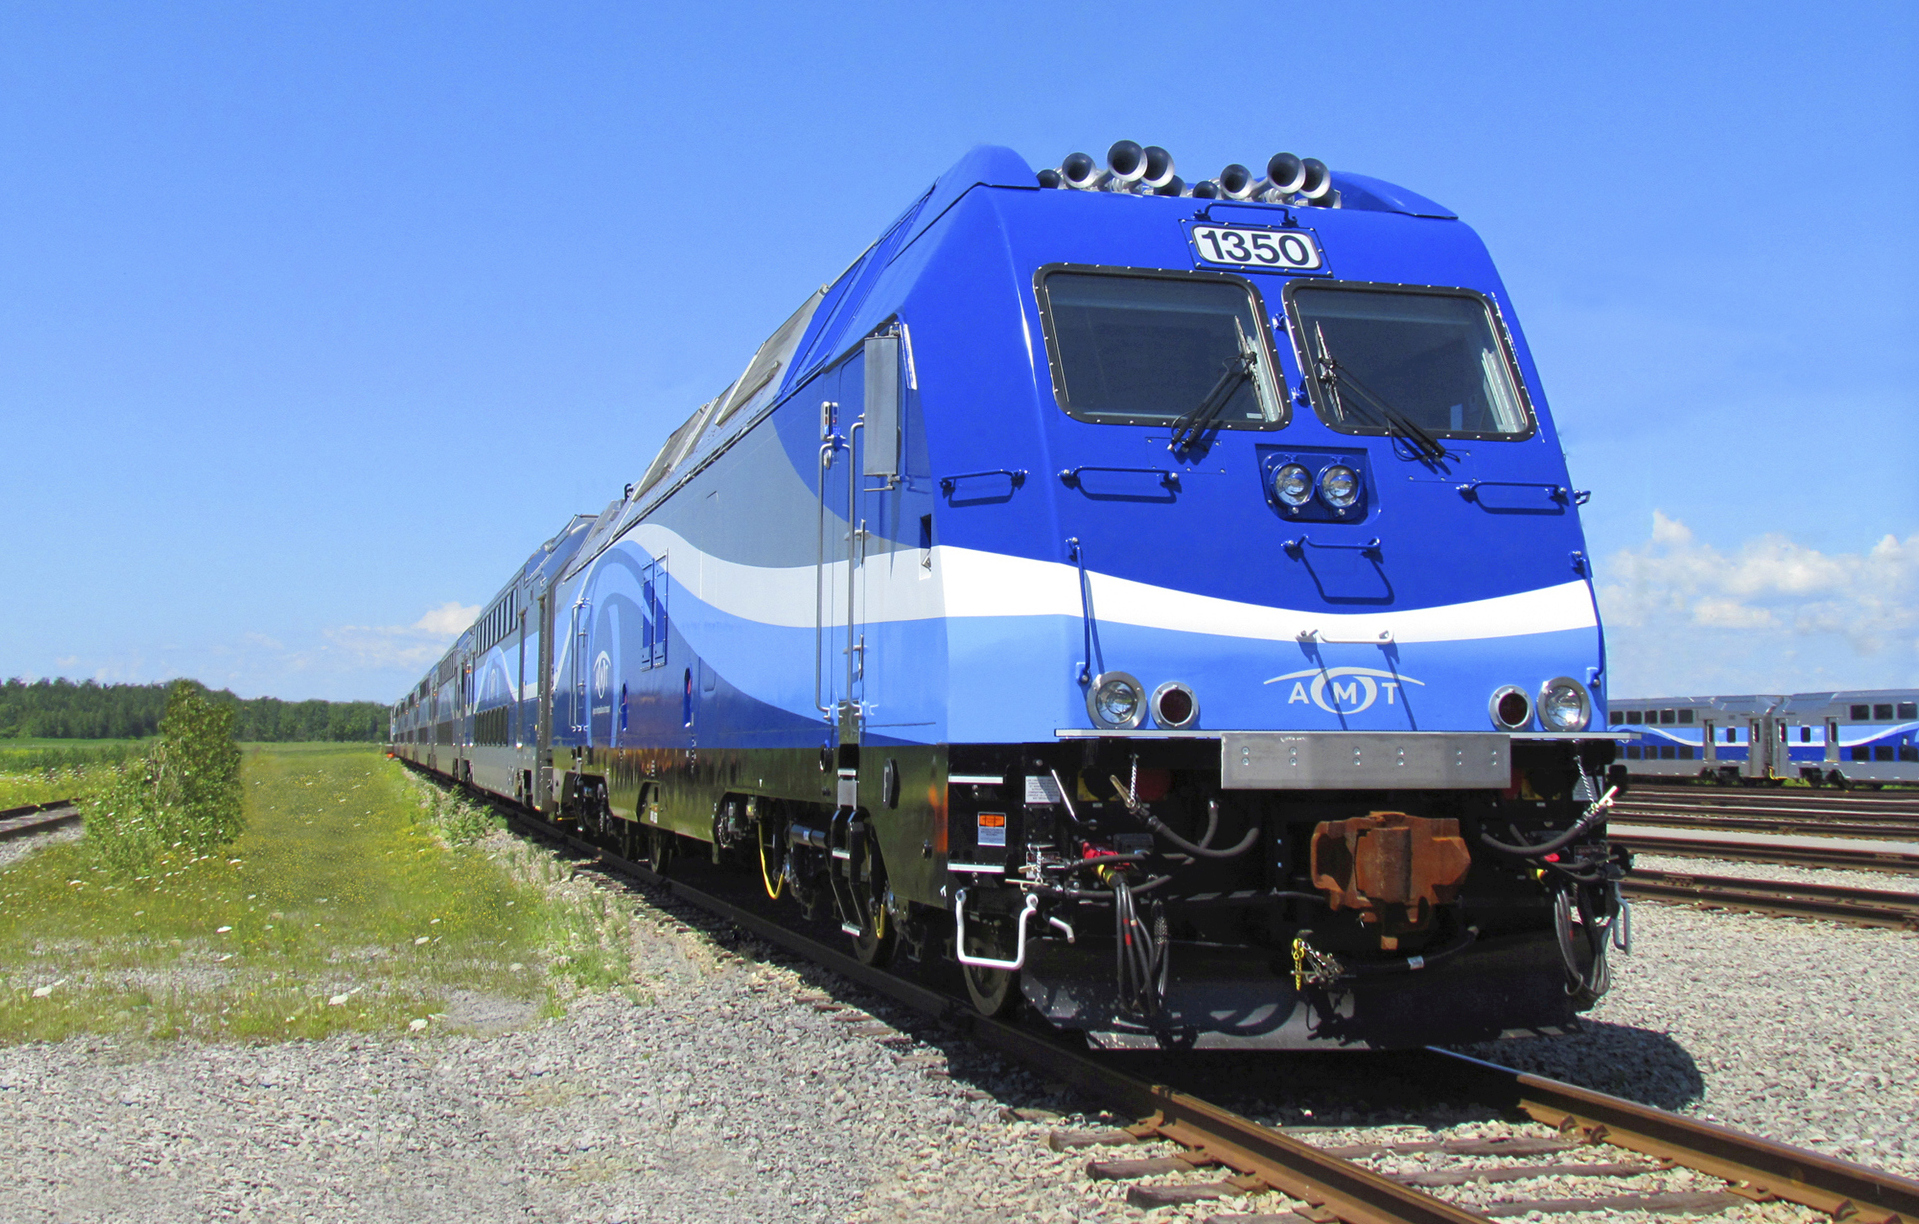 Contract strengthens Bombardier's position as industry-leading rail services provider